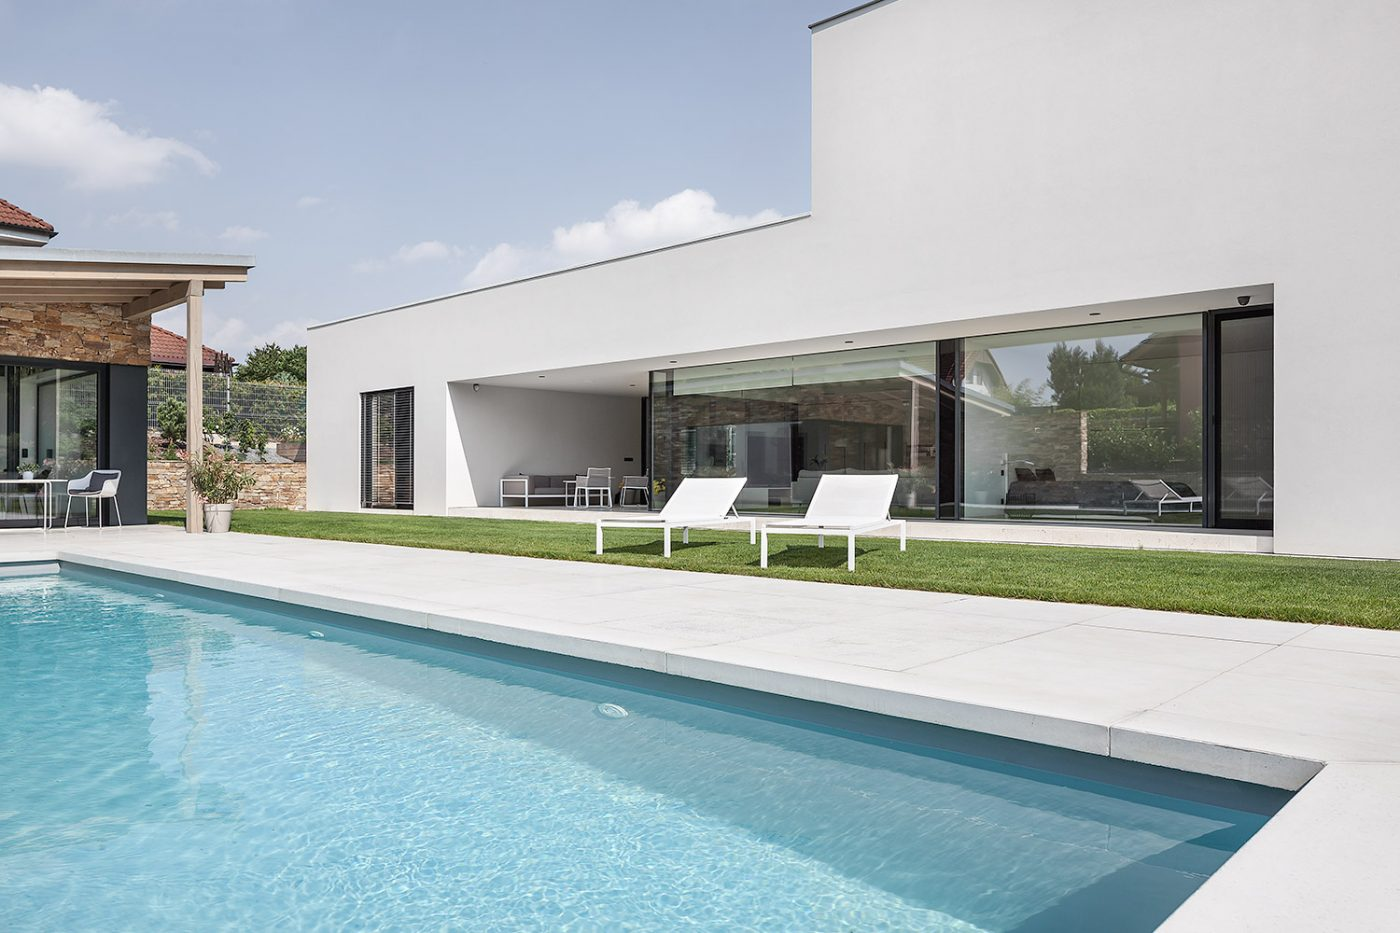 Family vila with pool in Petrovice designed by architects Labor13